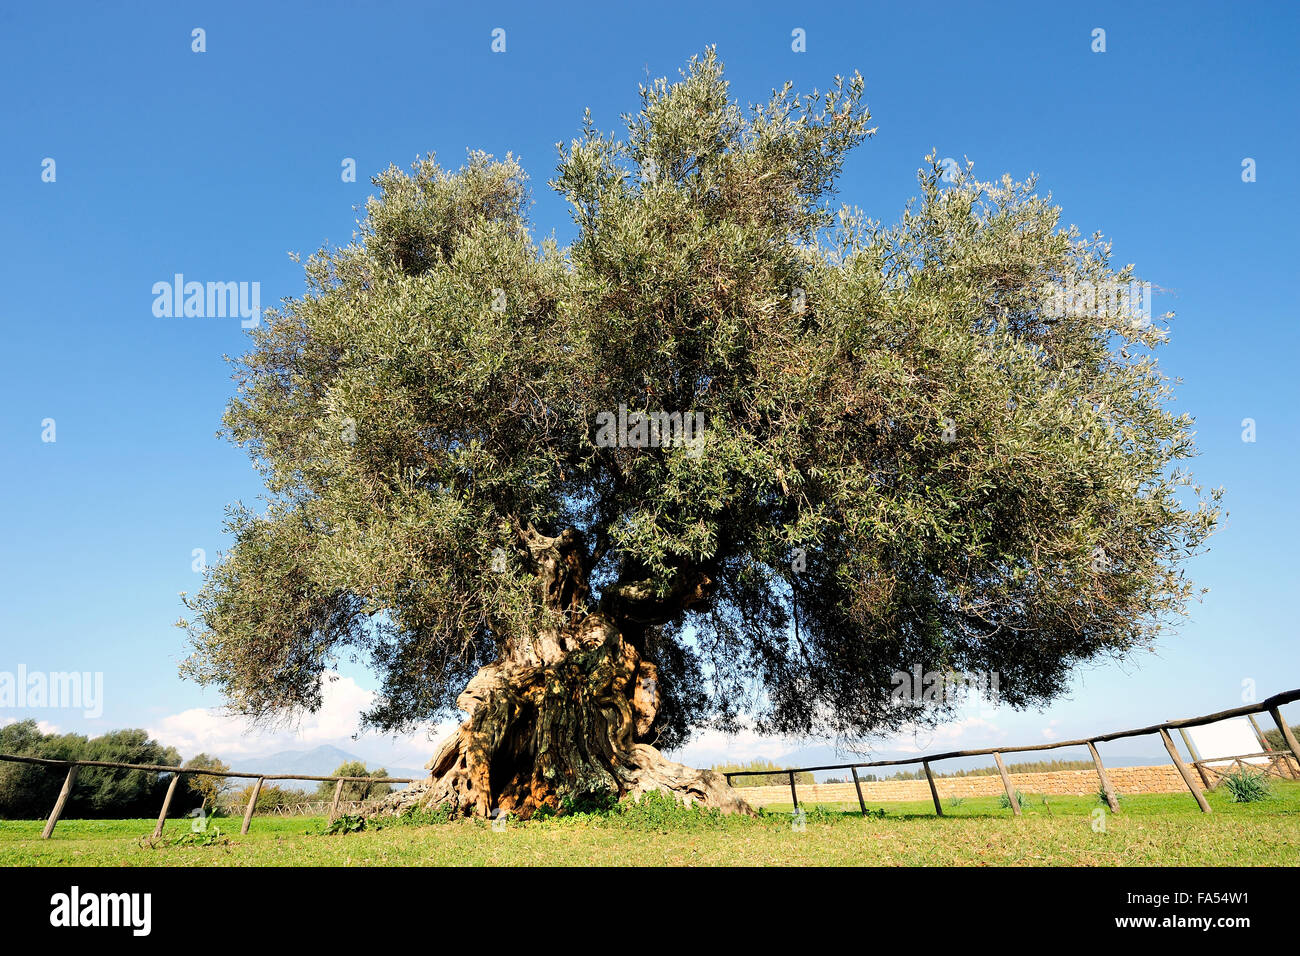 Image of a centuries-old olive tree photographed in daylight - Stock Image